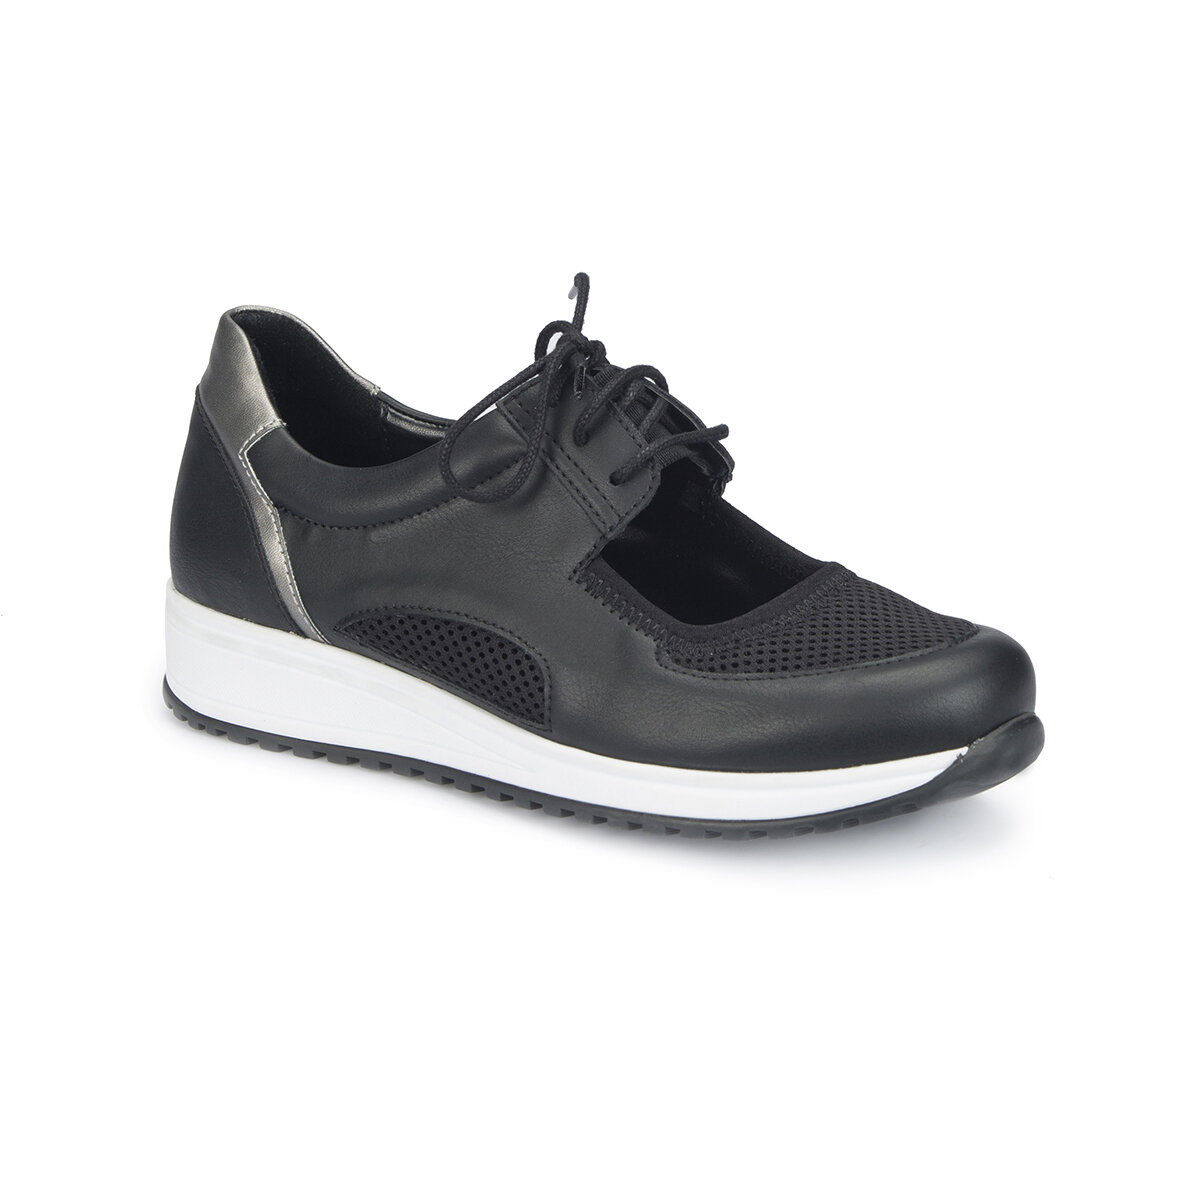 FLO 81.311400.Z Black Women 'S Sports Shoes Polaris